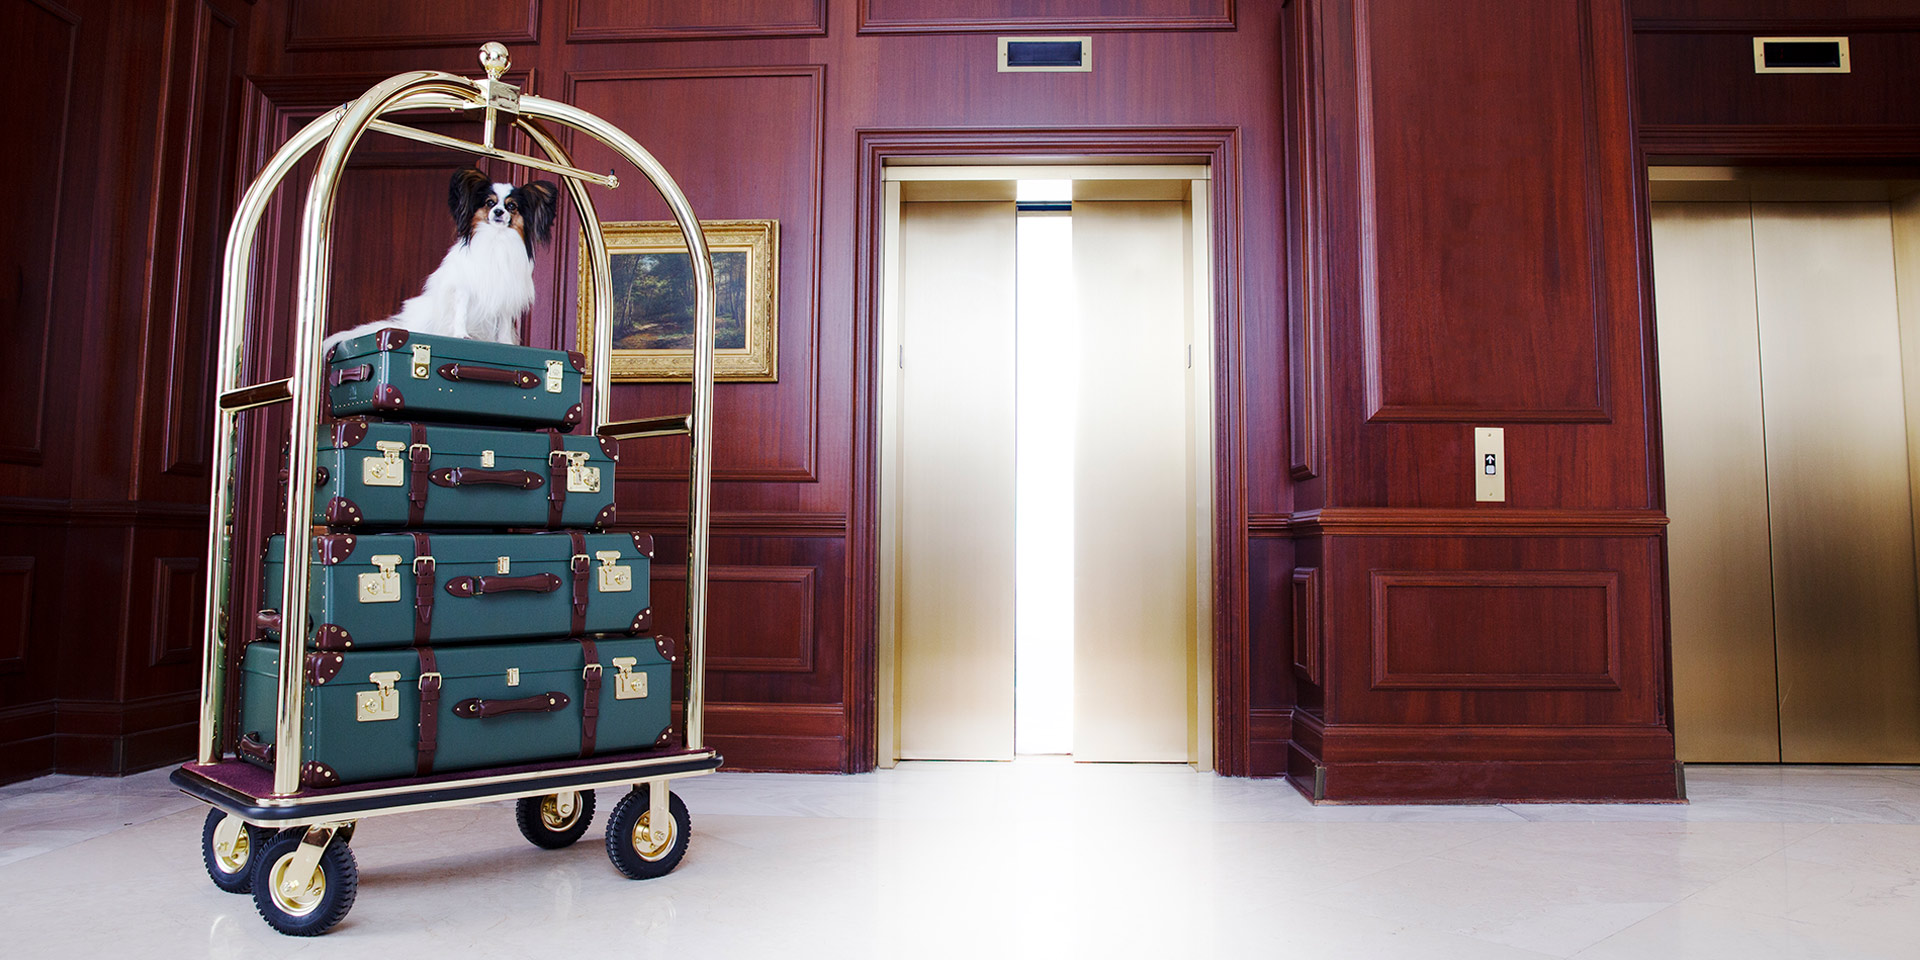 entry of nemacolin with bellhop cart